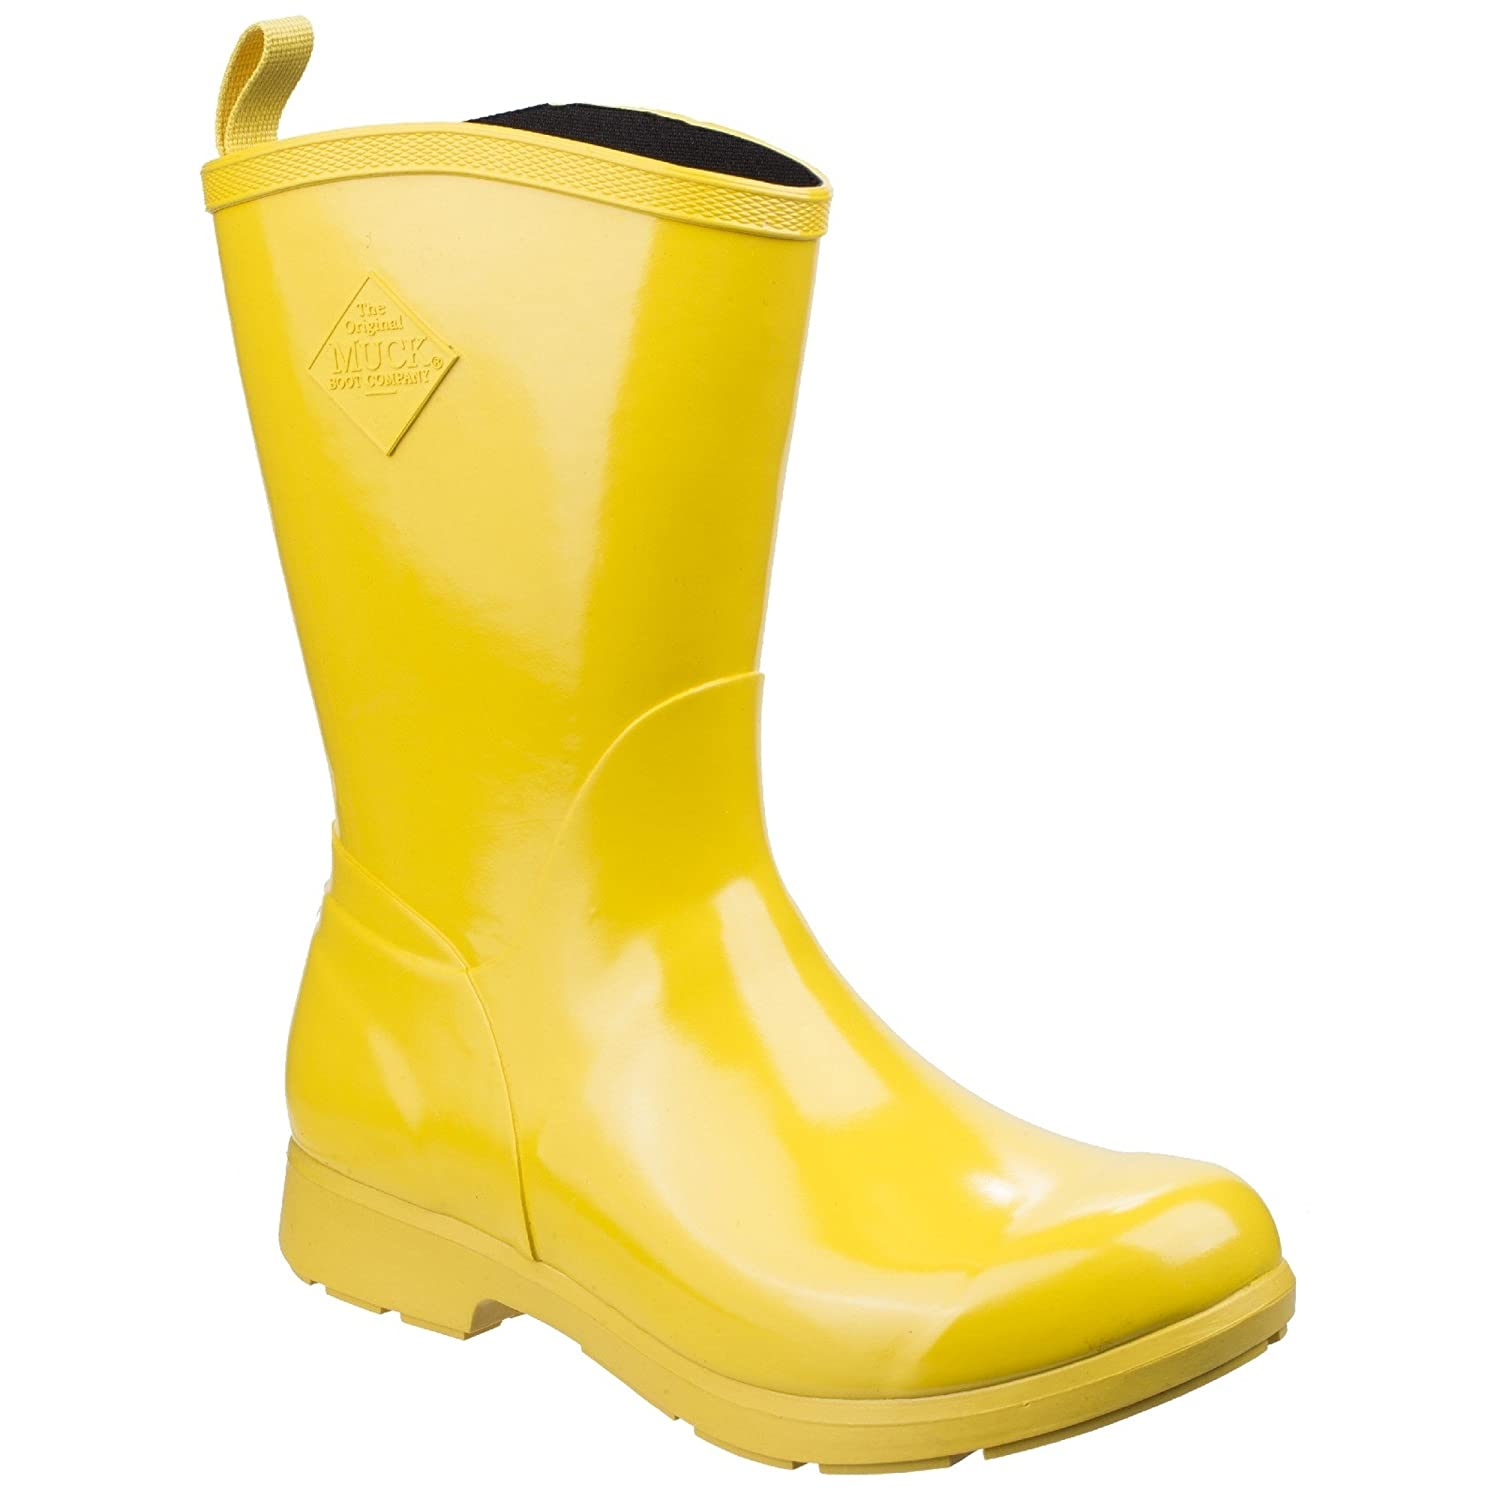 Muck Boot Womens/Ladies Bergen Mid Lightweight Rain Boots B07CQSSZ4C 7 M US|Yellow